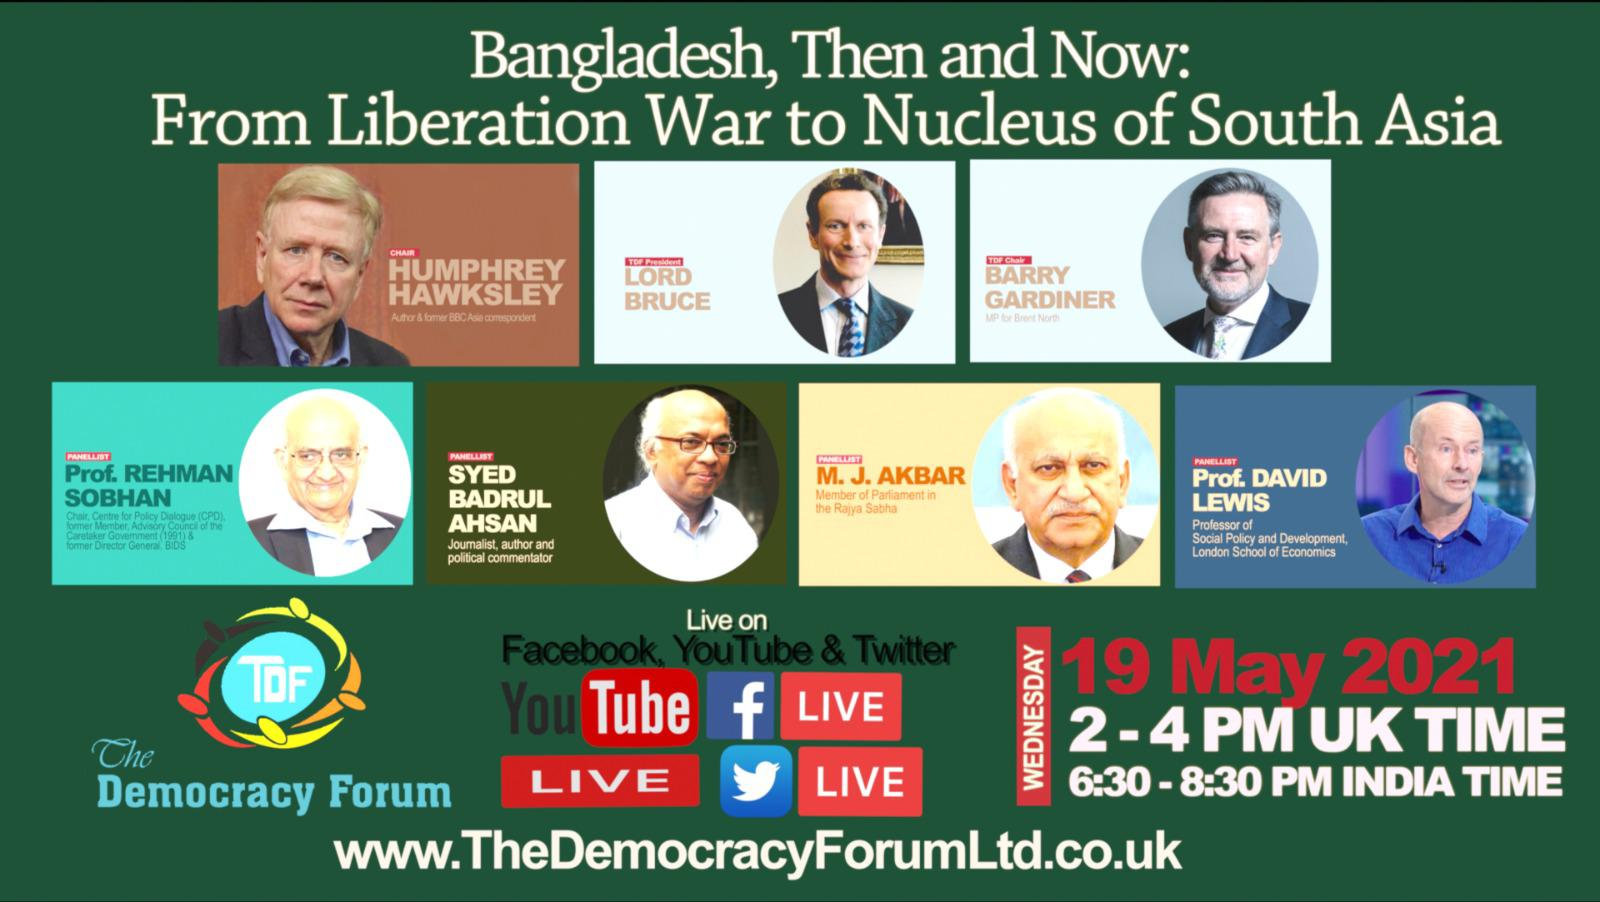 Bangladesh, Then and Now: From Liberation War to Nucleus of South Asia